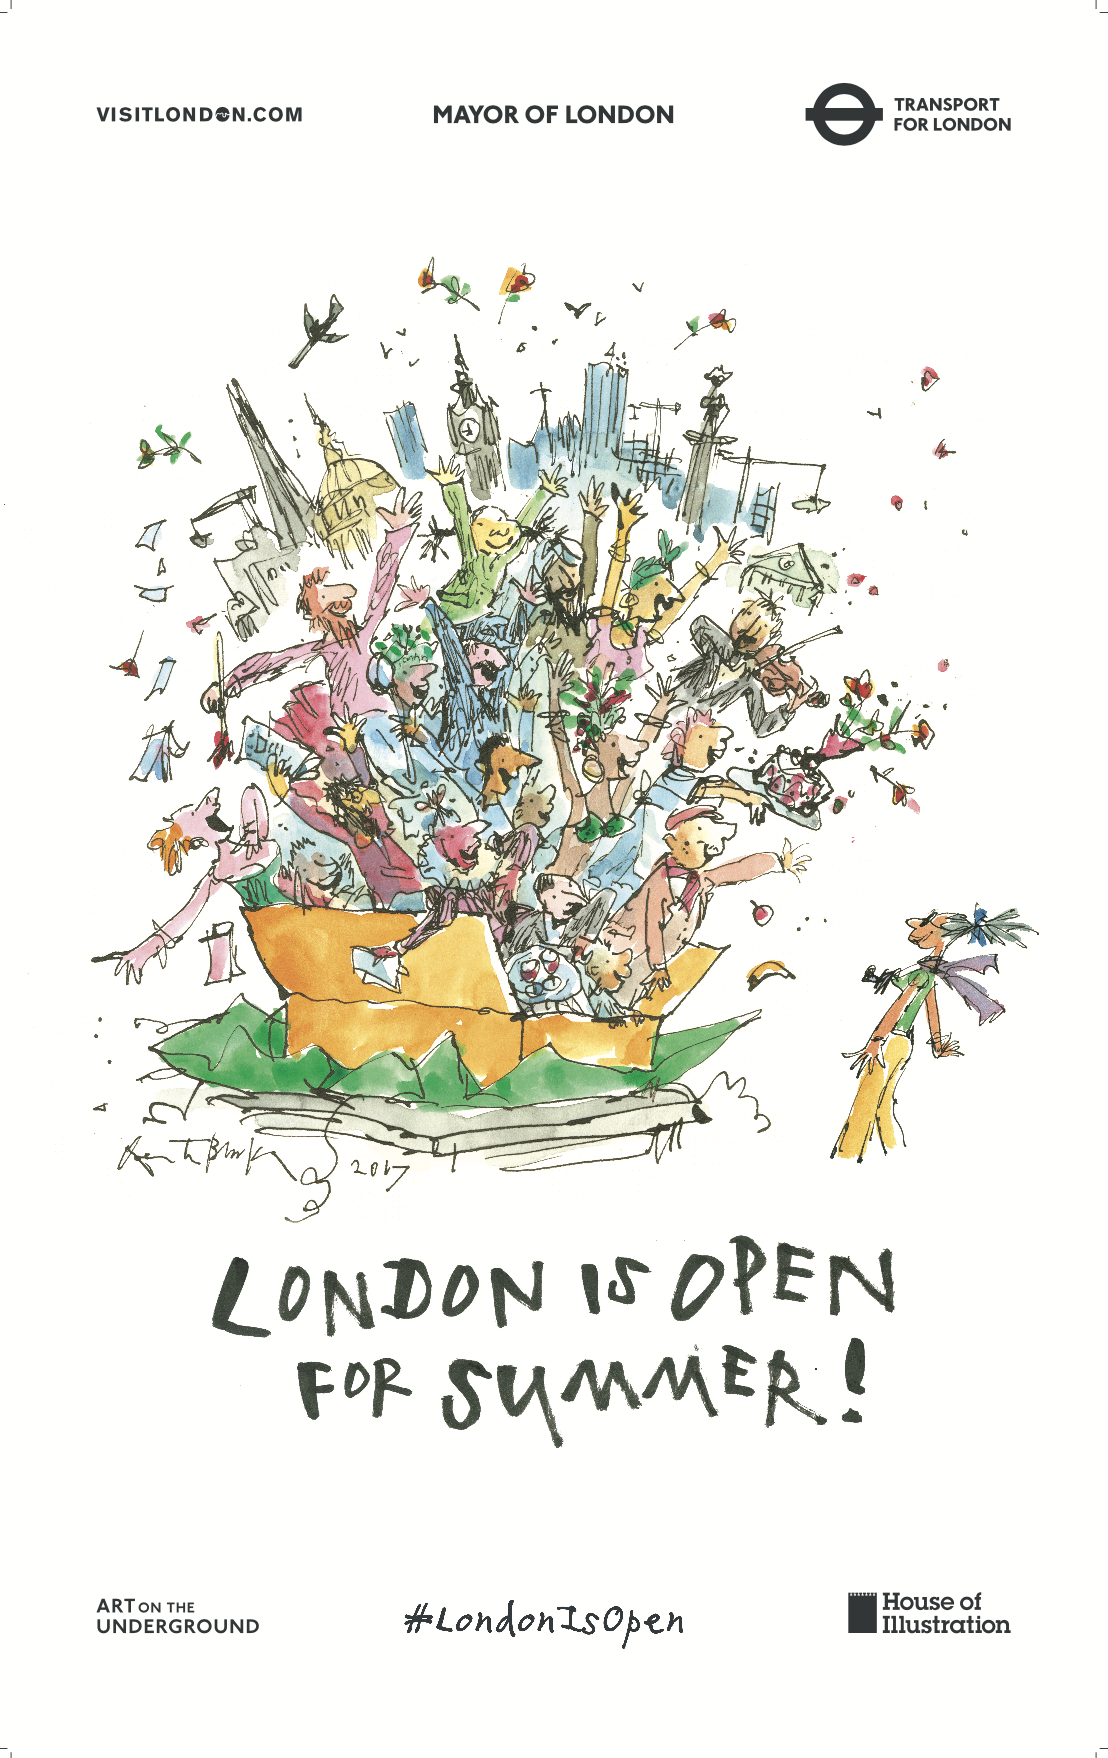 Mayors Office London Outdoor Ad - #LondonIsOpen for Summer